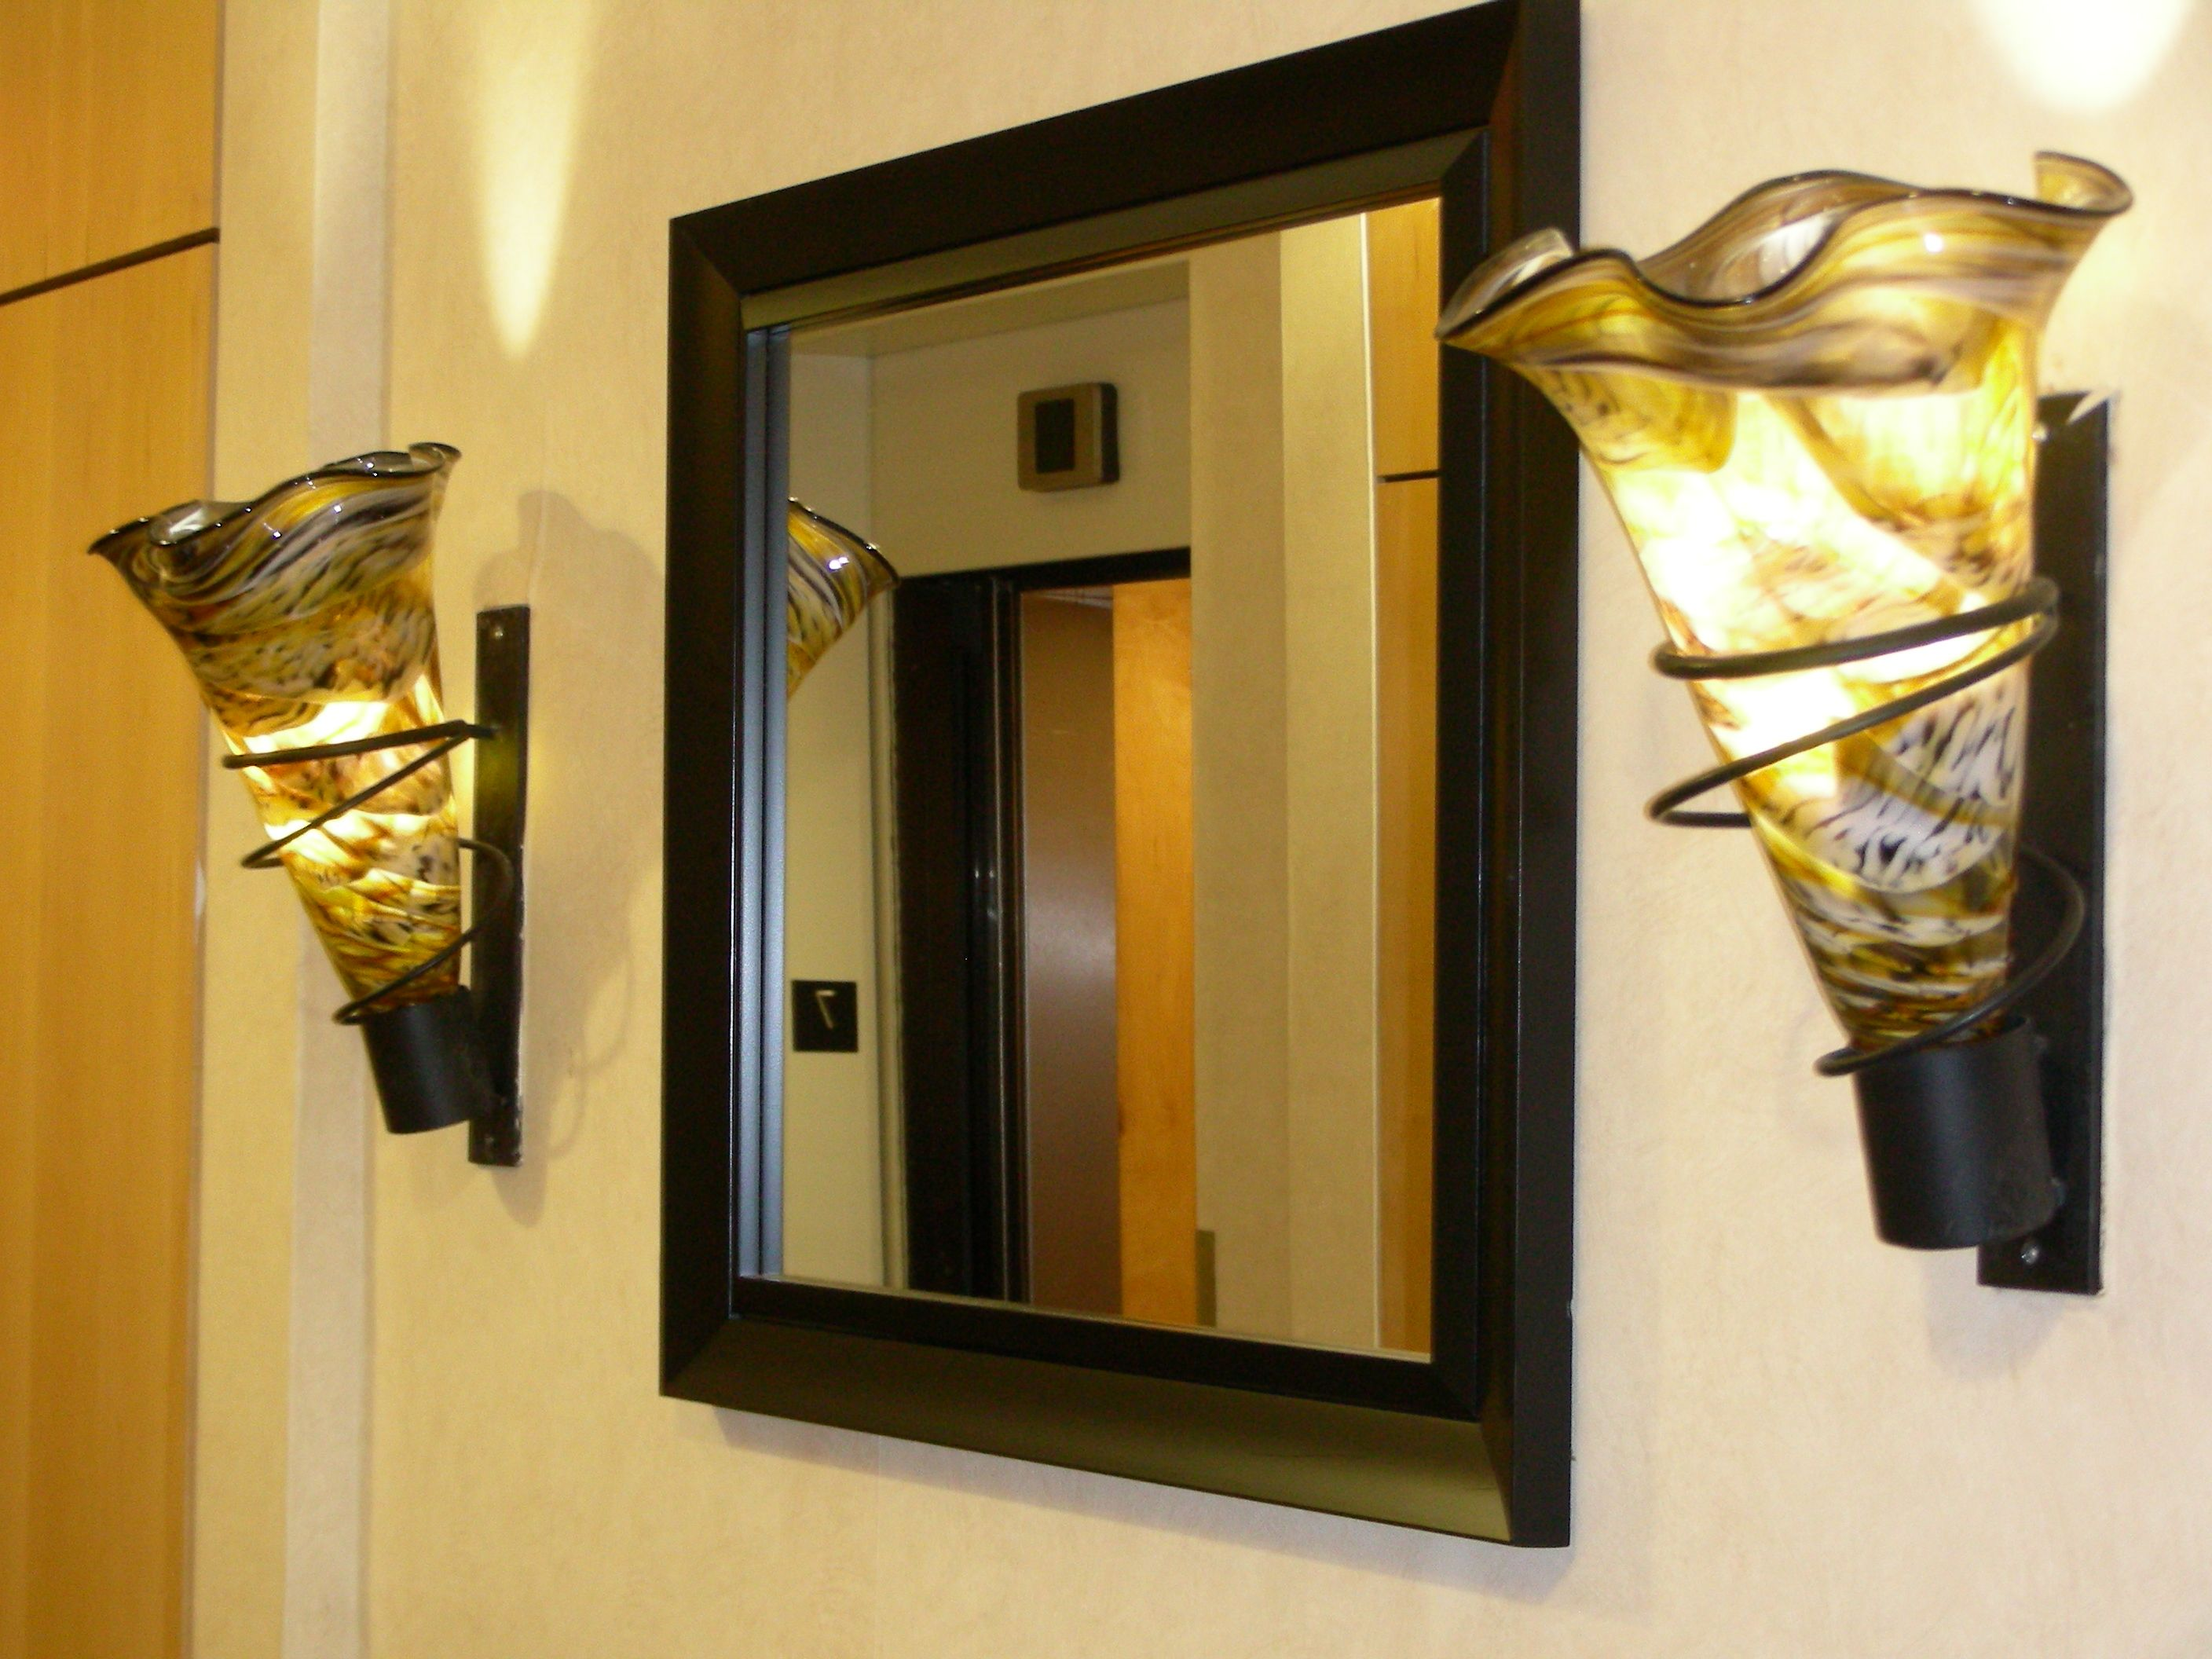 Wall Sconce Ideas To Put Next To Our Mirror.